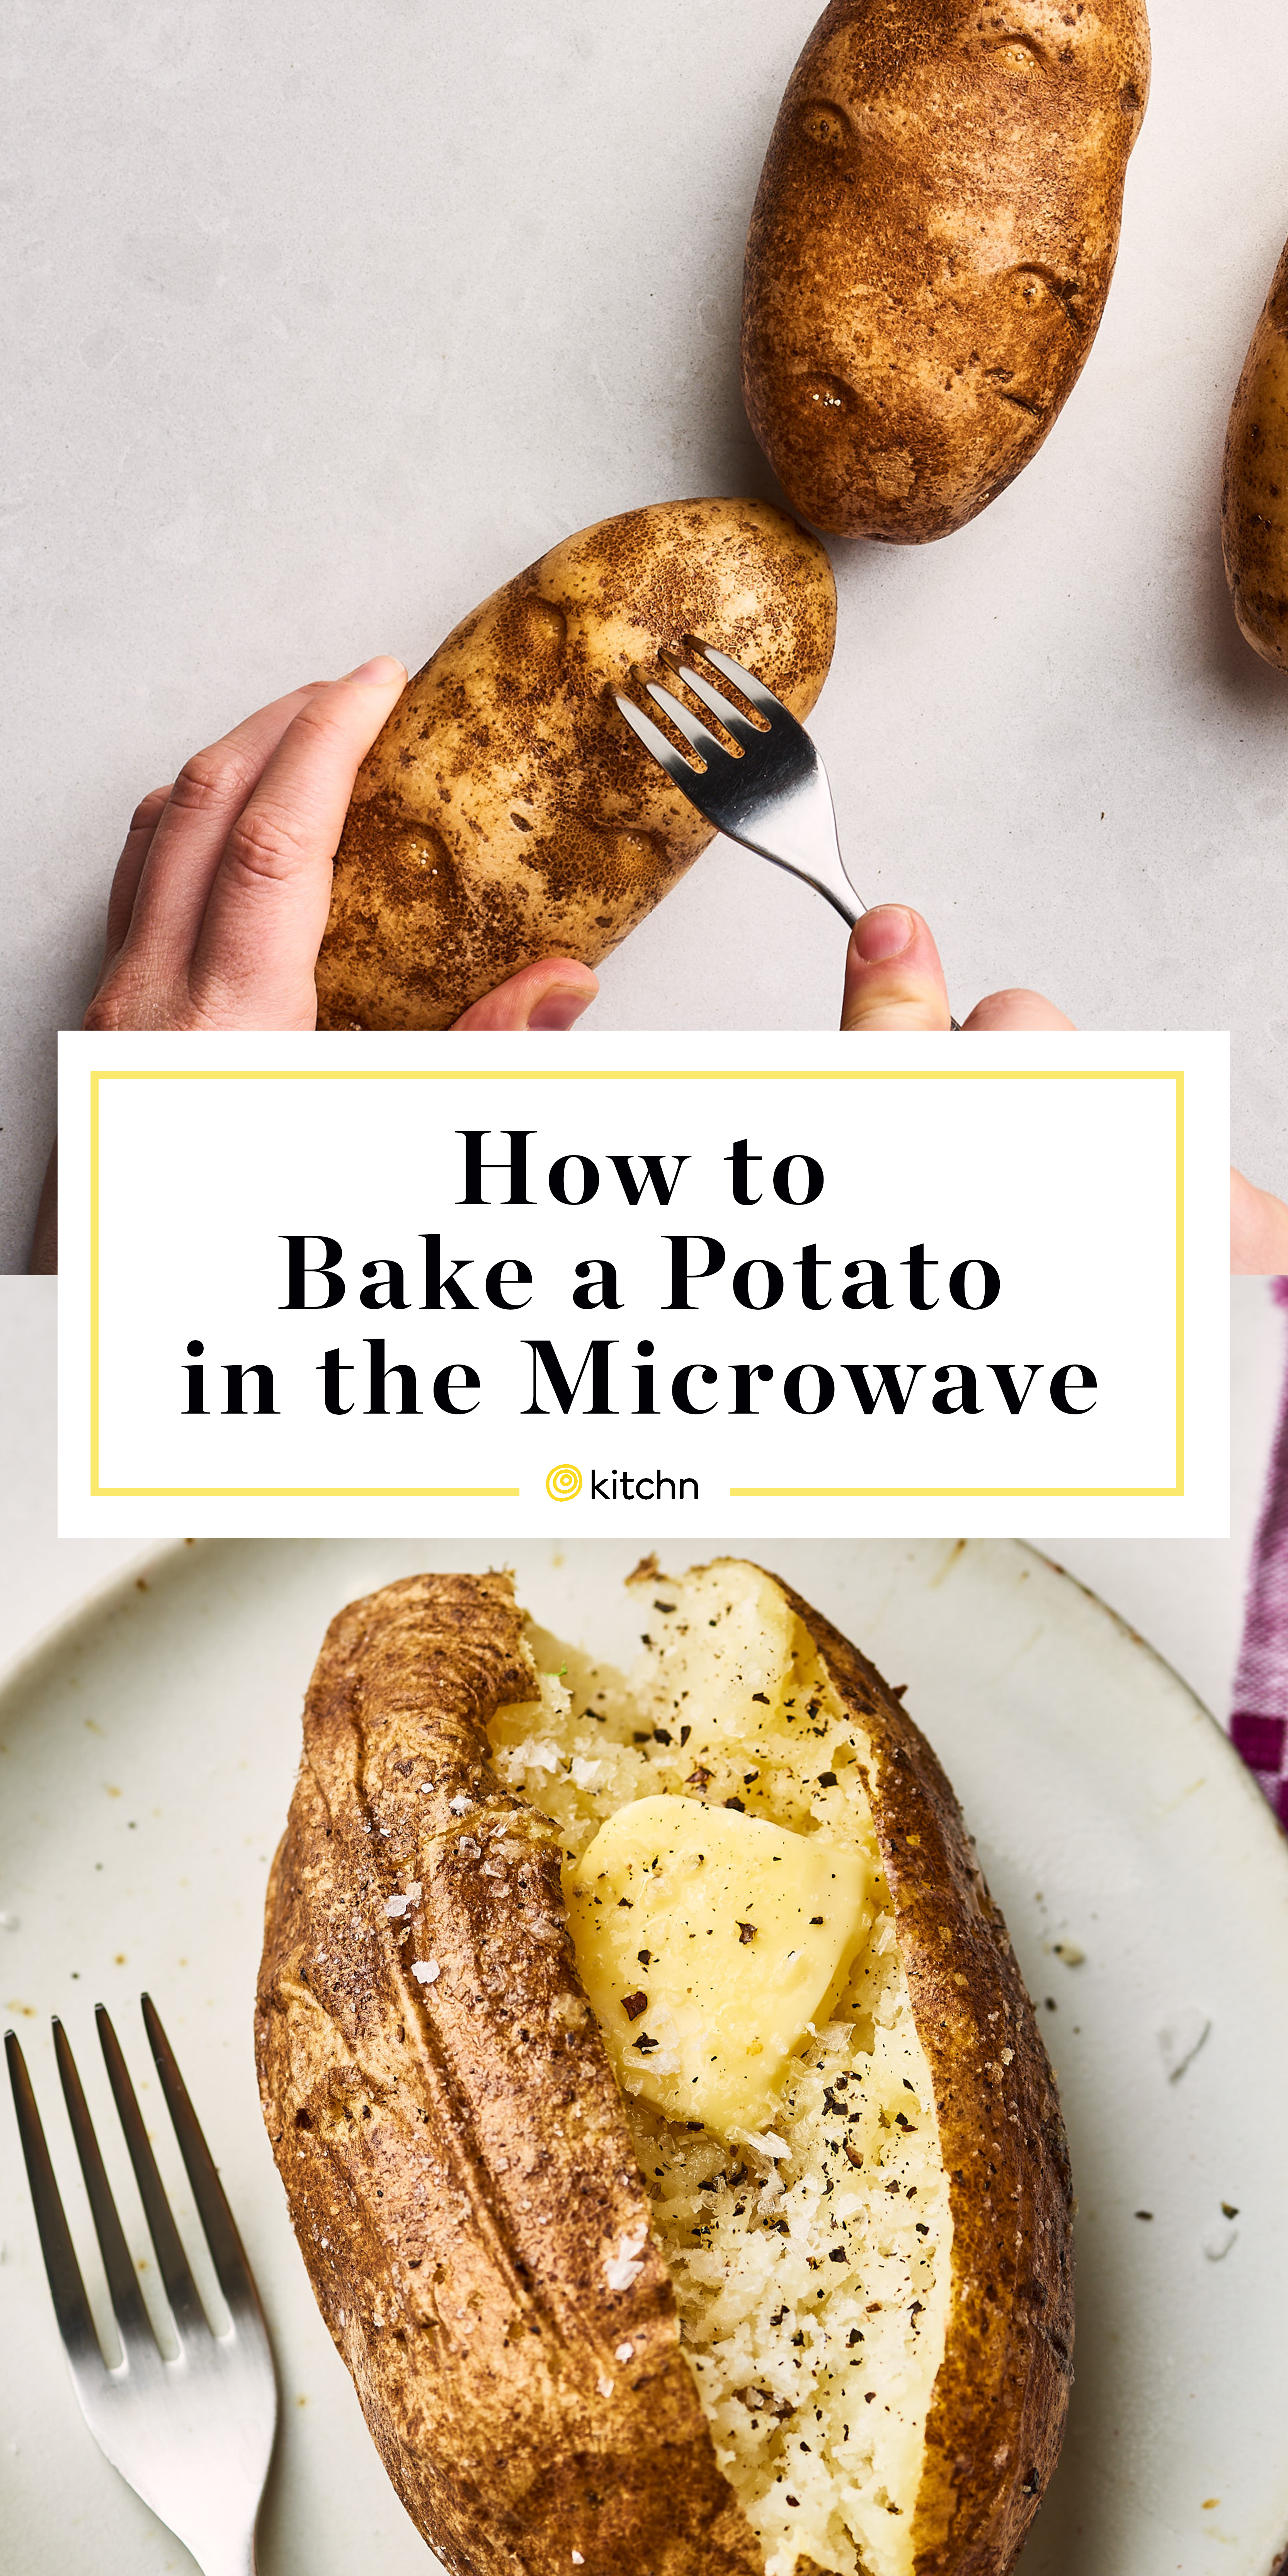 Microwave potatoes before baking them